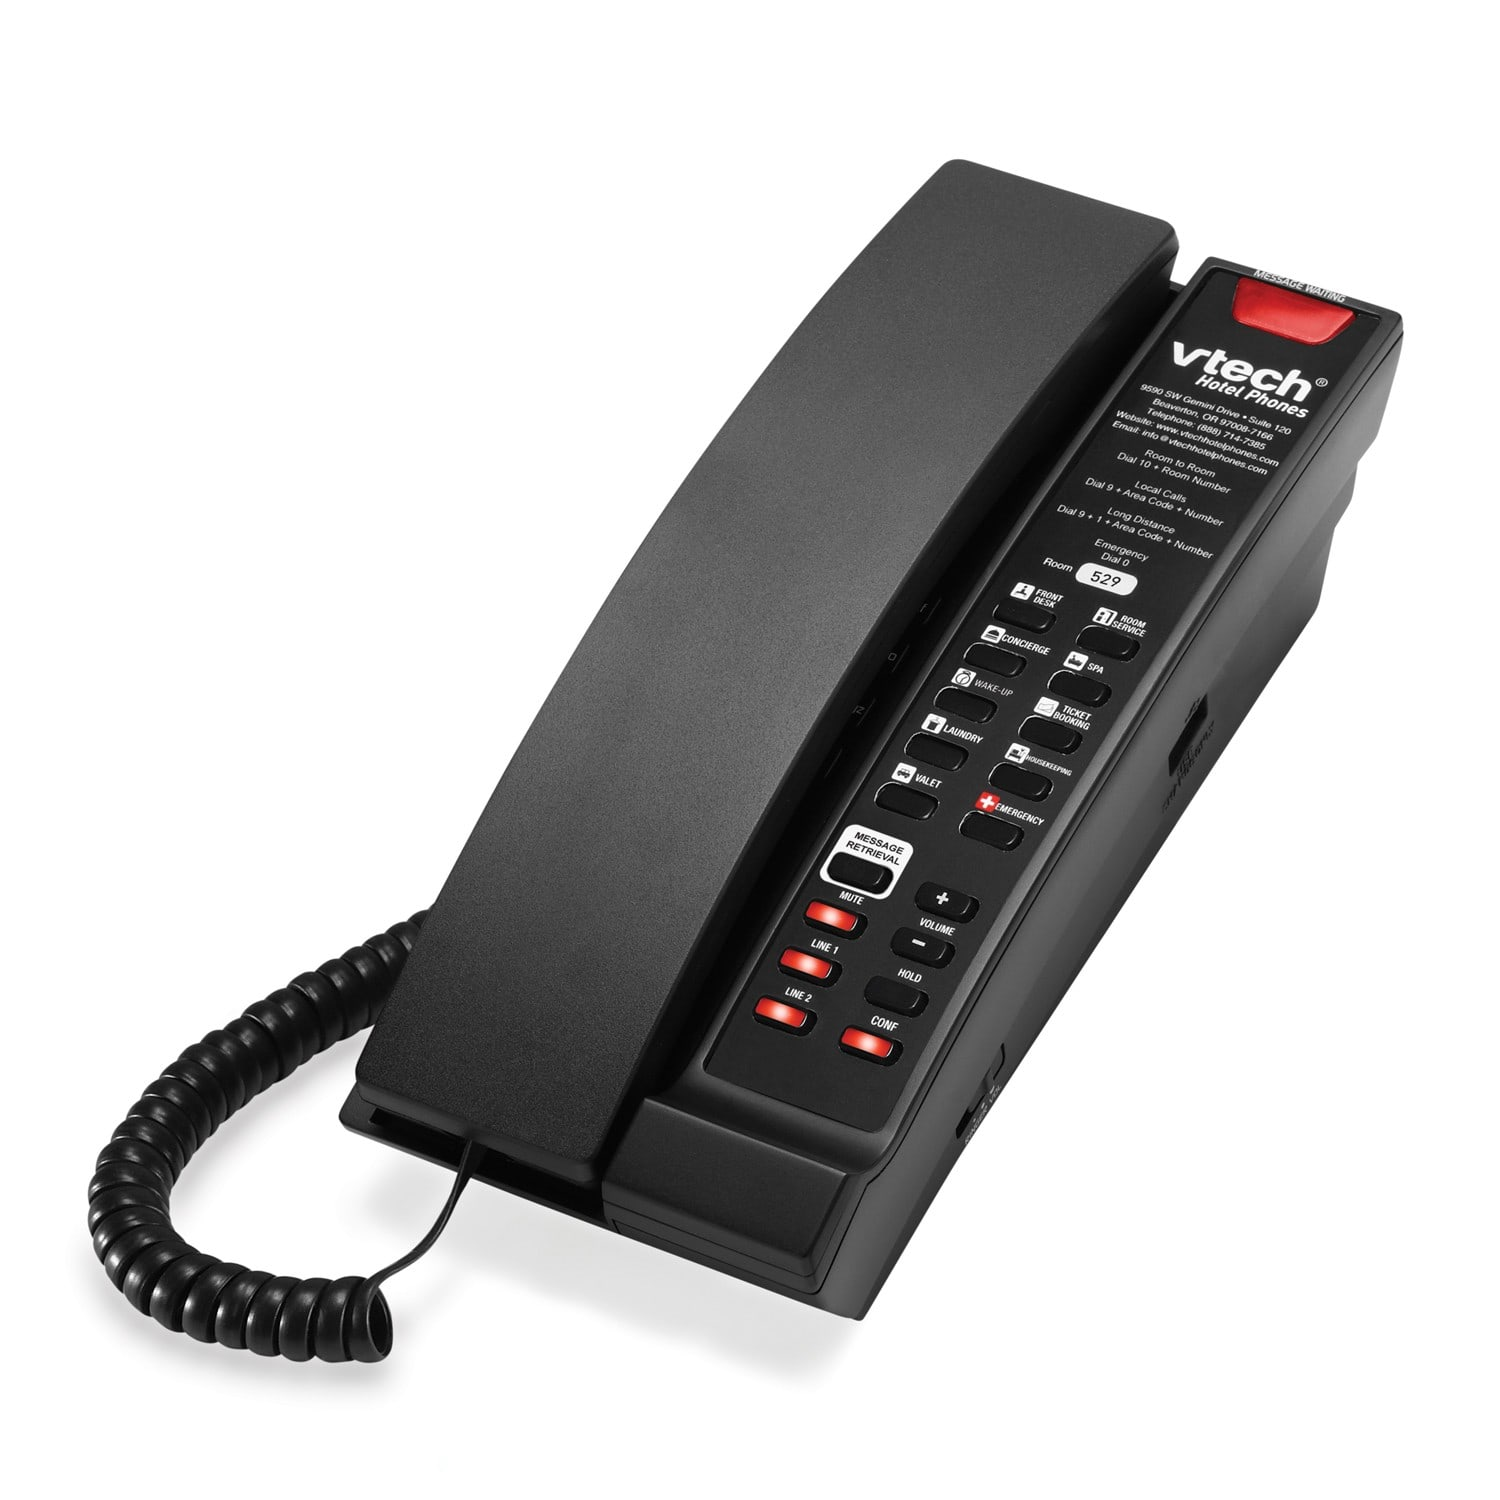 panasonic 2 line cordless phone manual